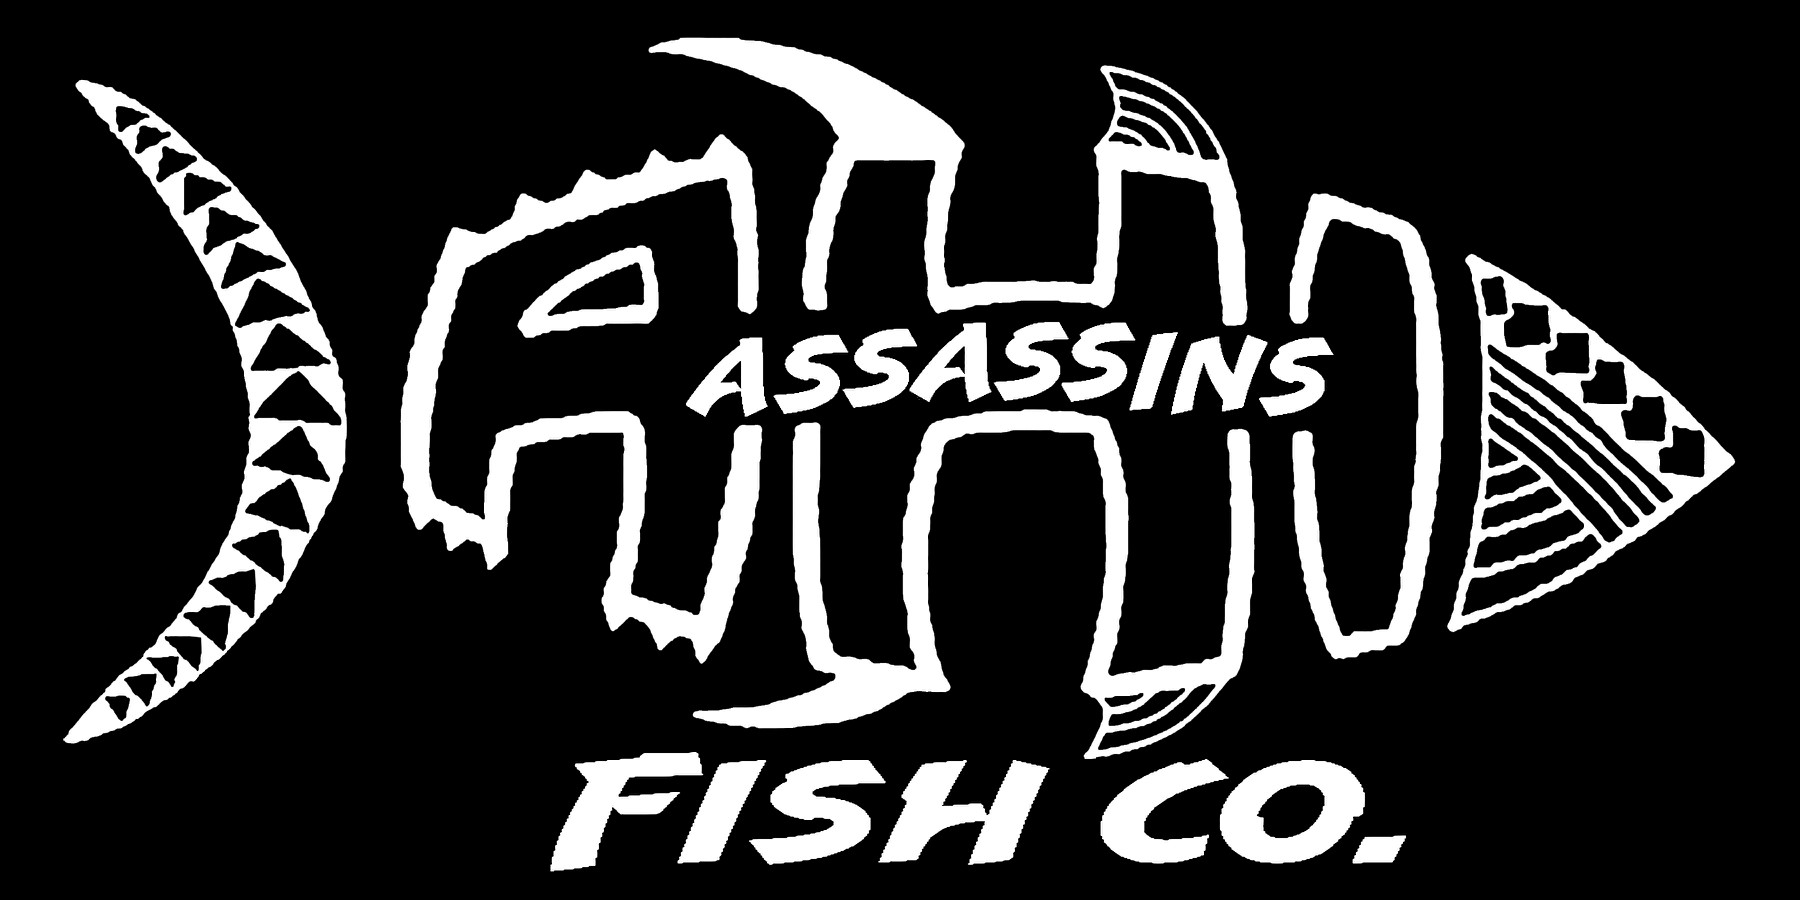 Ahi Assassins Fish Co | HONOLULU, HI | Fresh, Never Frozen